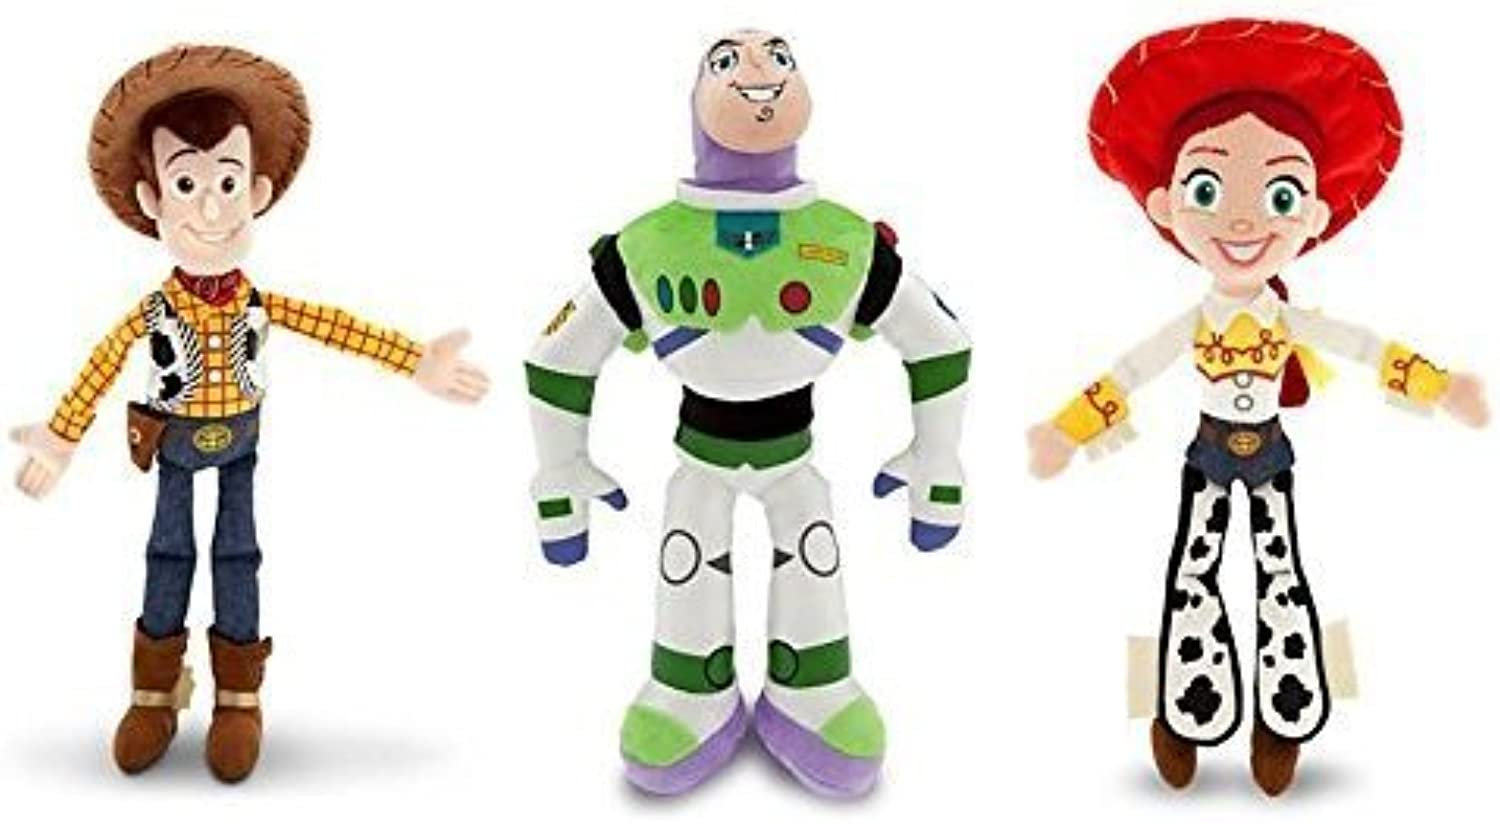 calidad fantástica Disney Juguete Story Story Story - Woody, Buzz Lightyear, and Jessie - Plush Doll Set of 3 by Disney  buena calidad